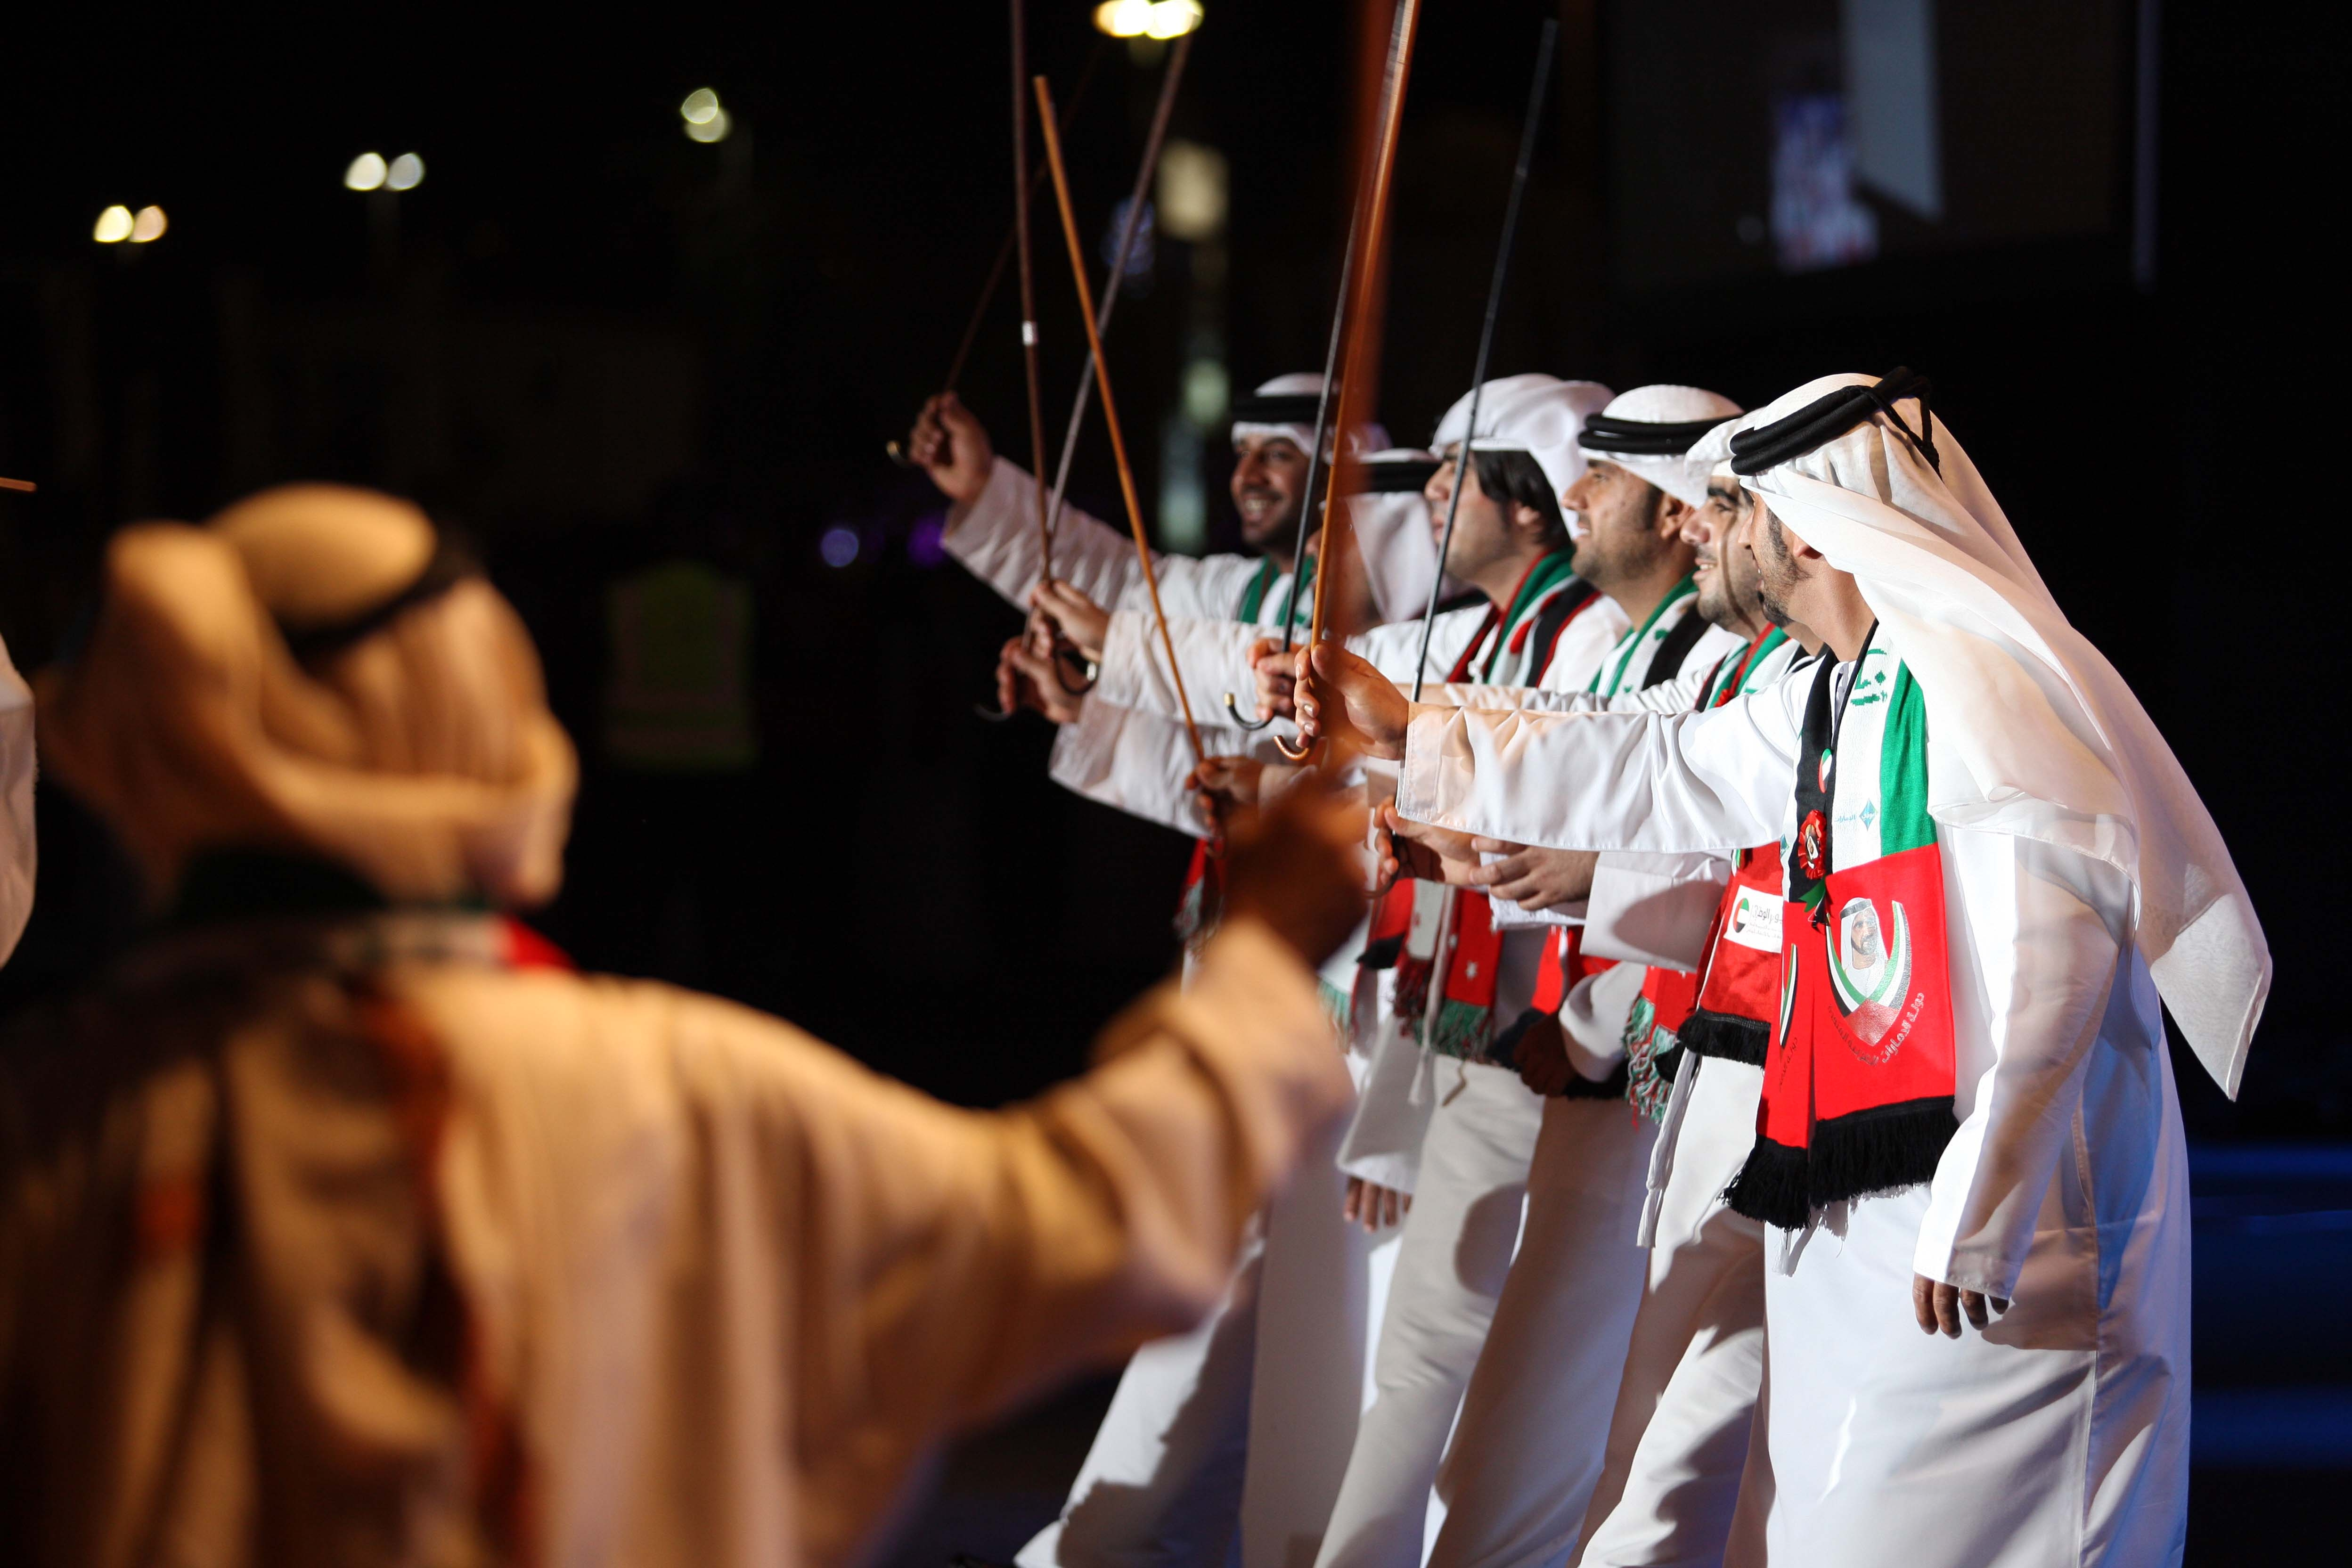 Emirati traditional celebratory dance. ADACH-Abu Dhabi